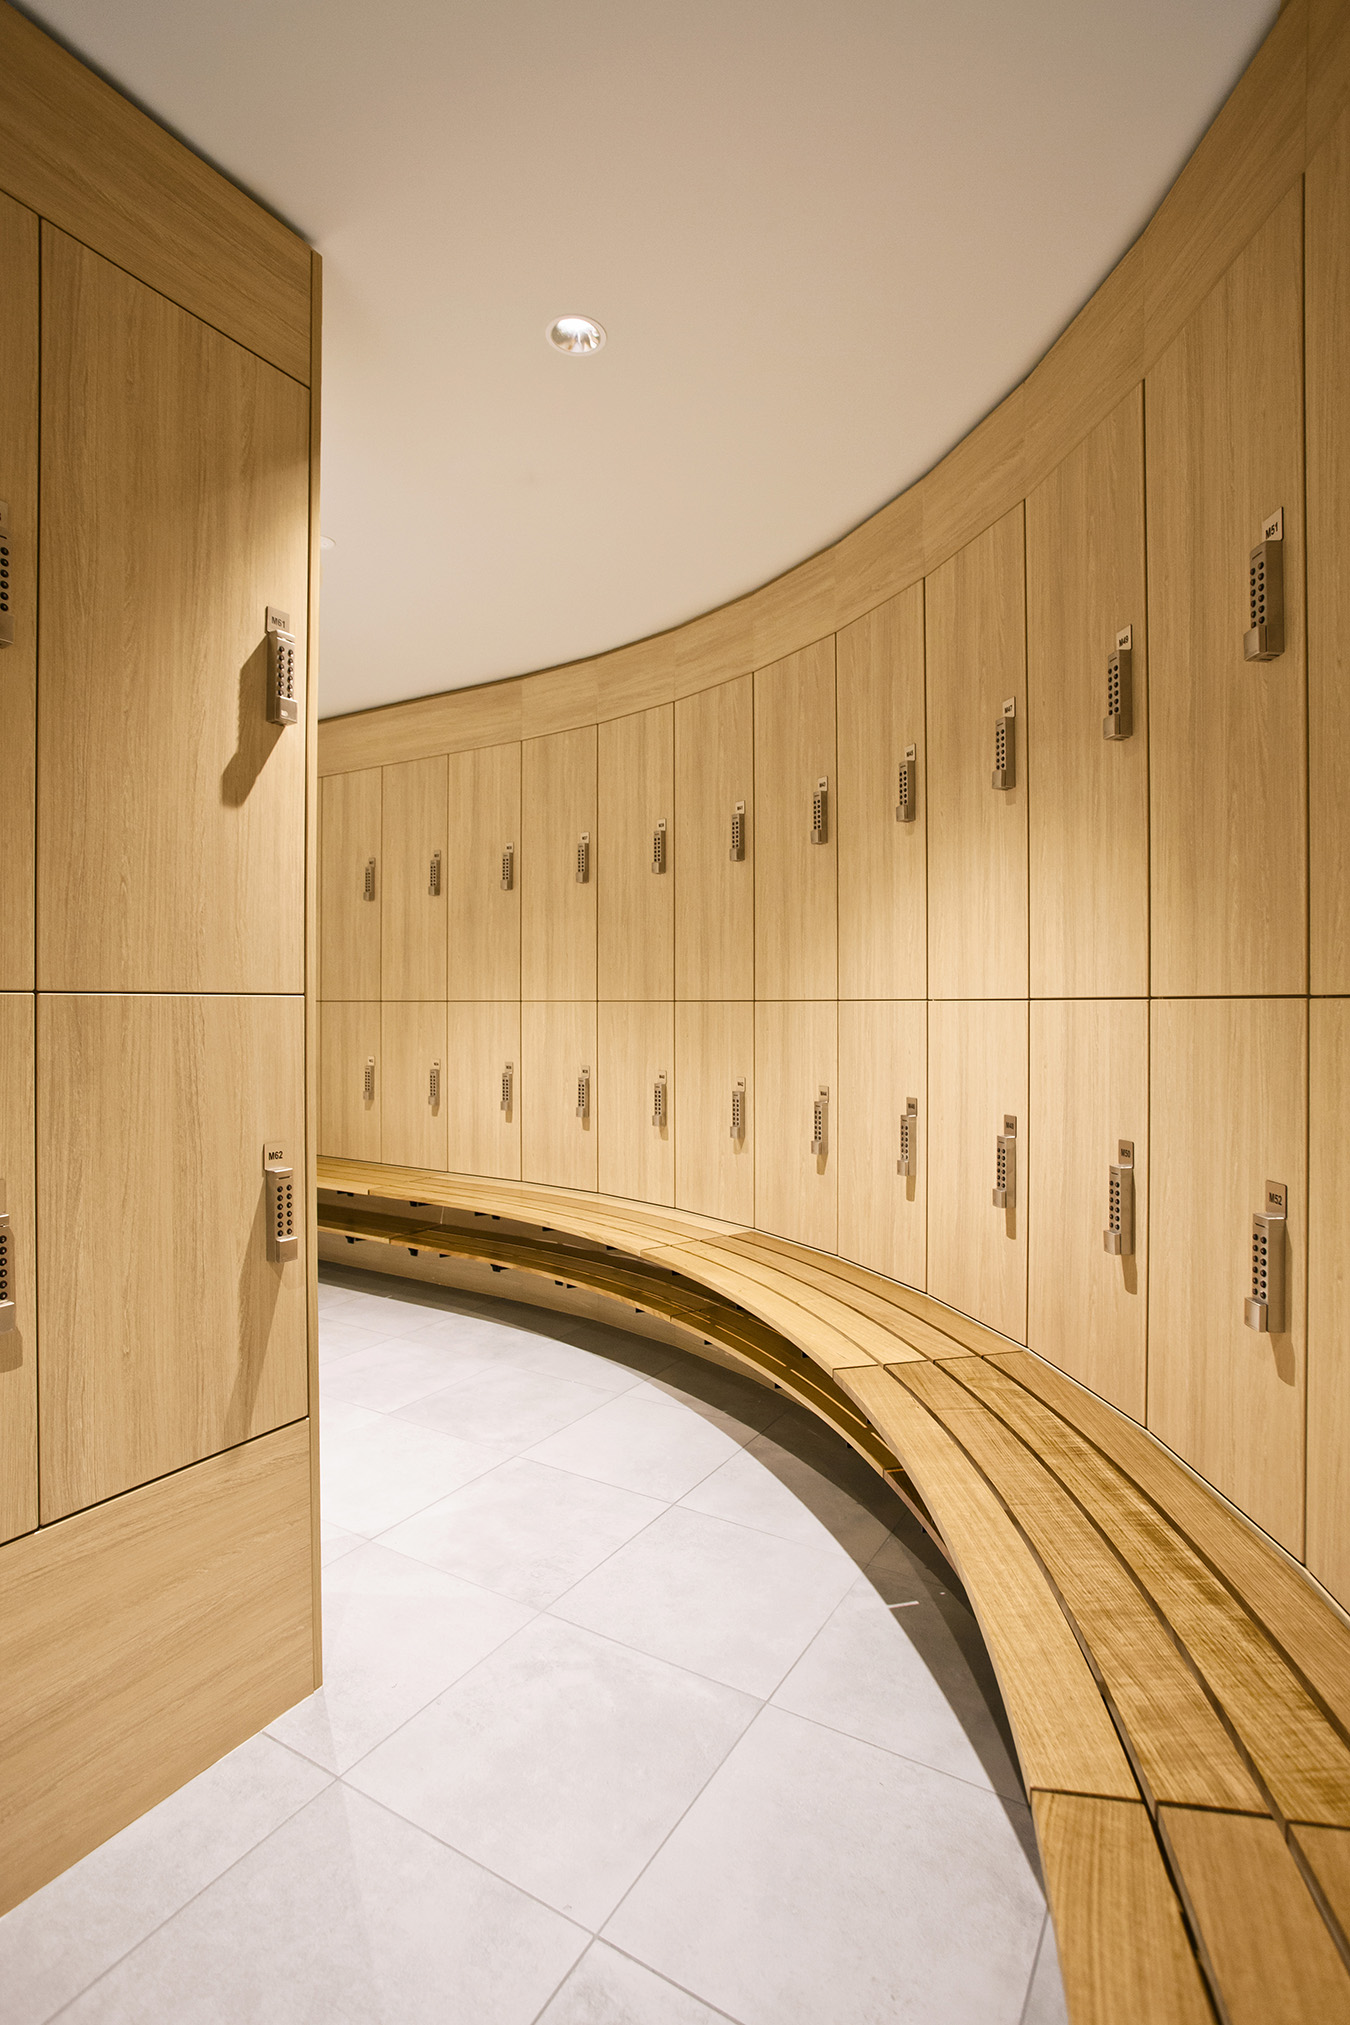 Curved Lockers by Lockin at Innovation Place